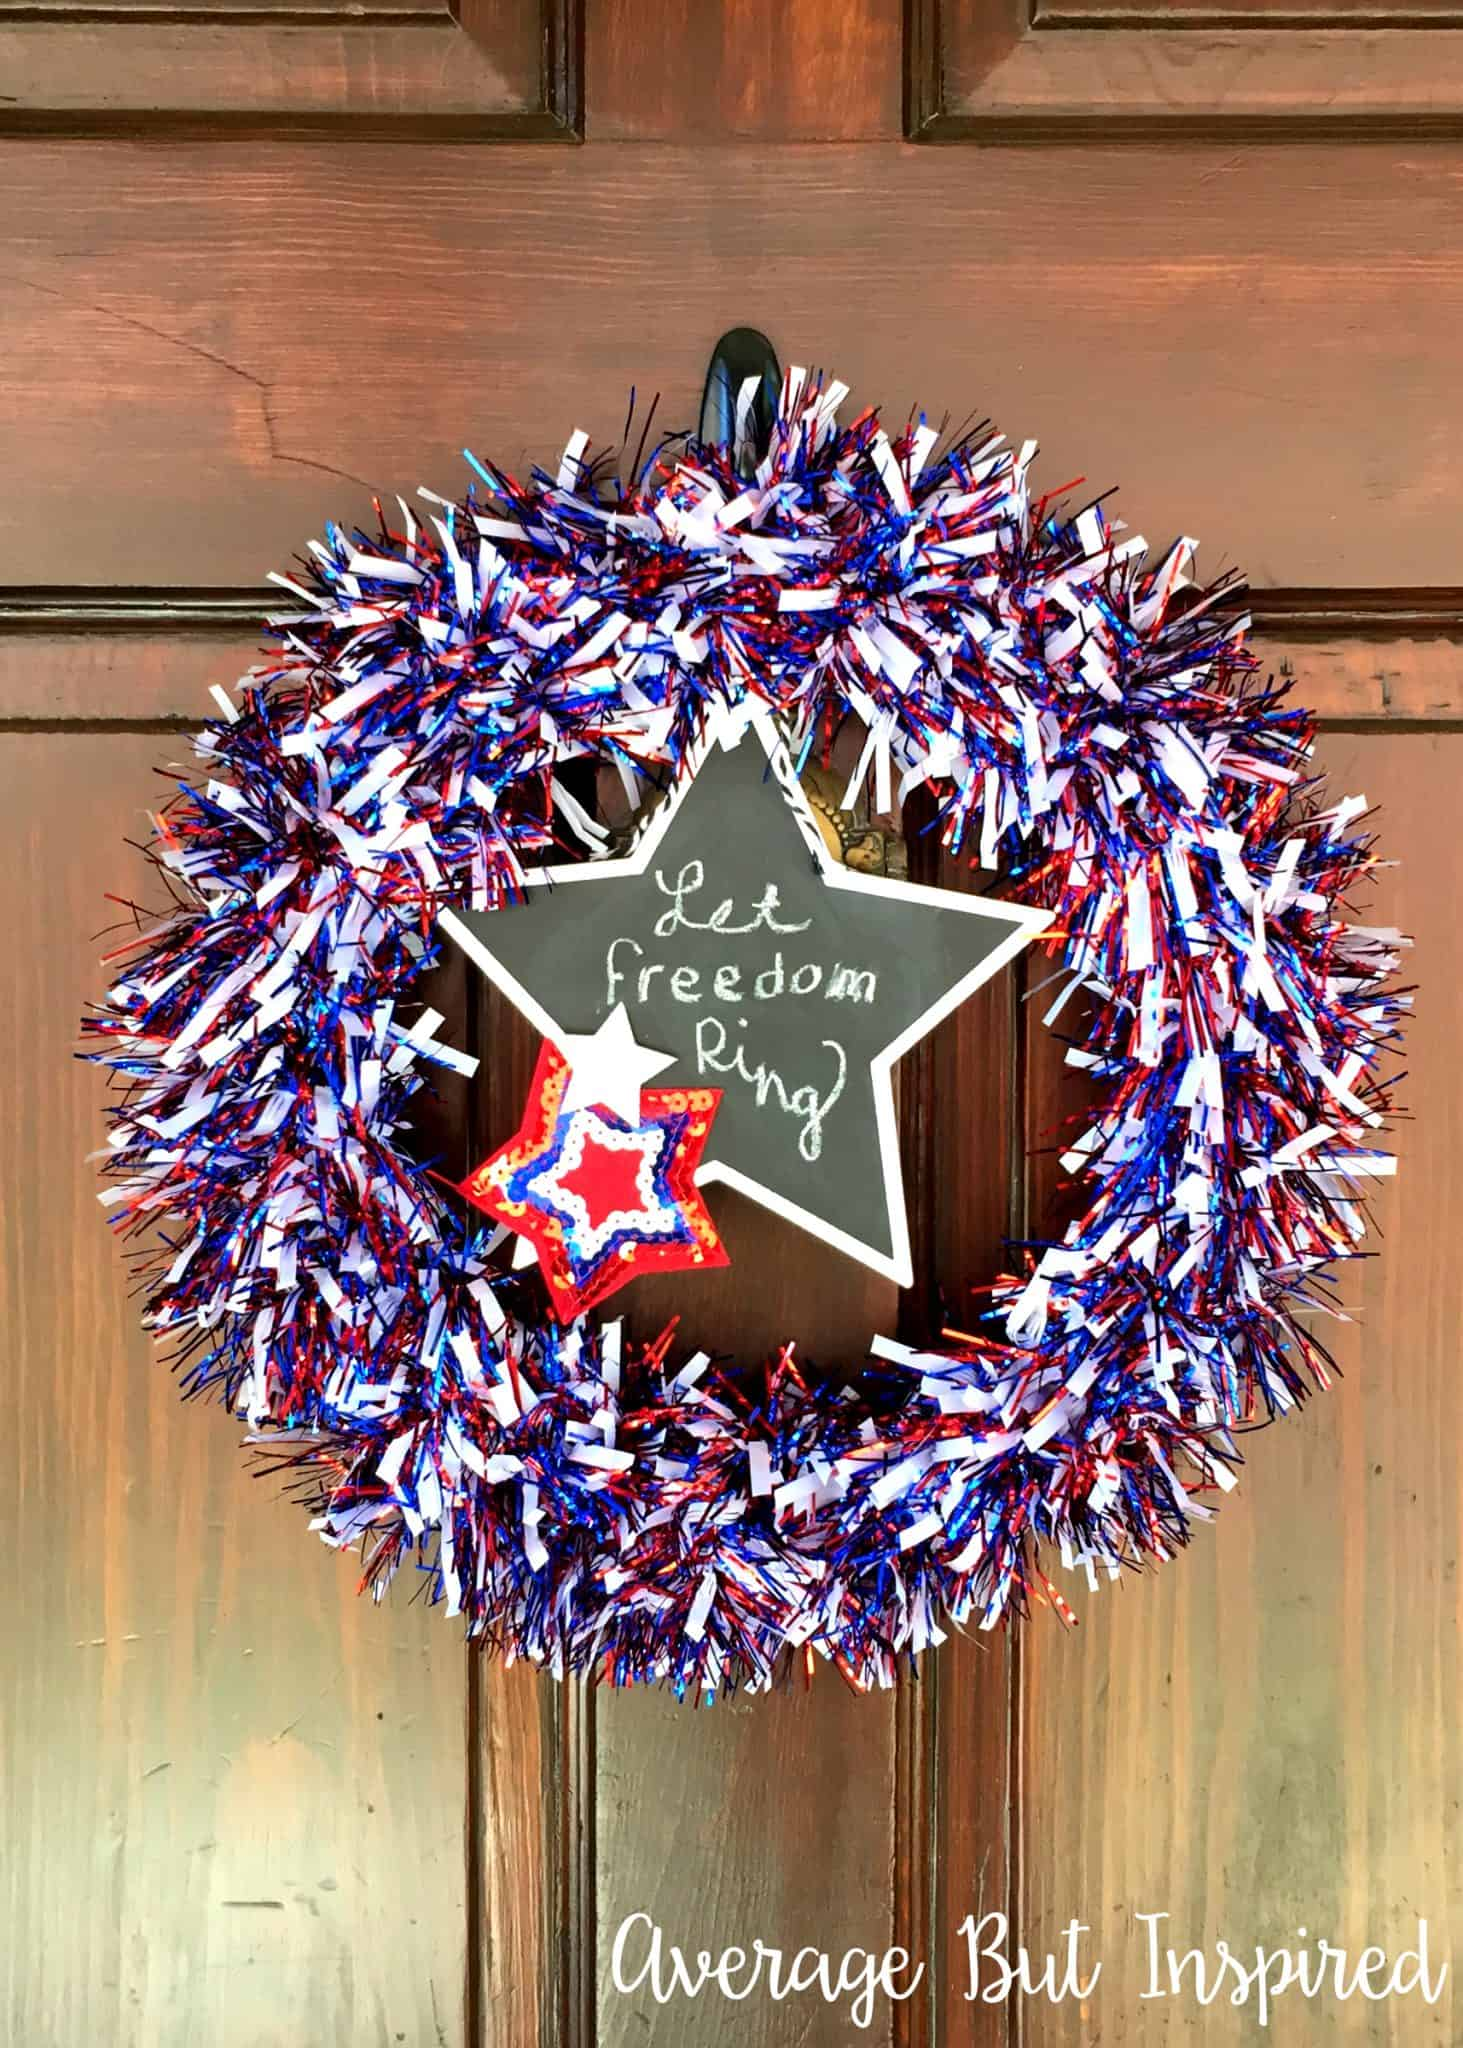 Make a DIY Fourth of July Wreath with supplies from Dollar Tree! This wreath cost $5 total to make! The tinsel garland adds a festive and sparkly touch for the Fourth of July.